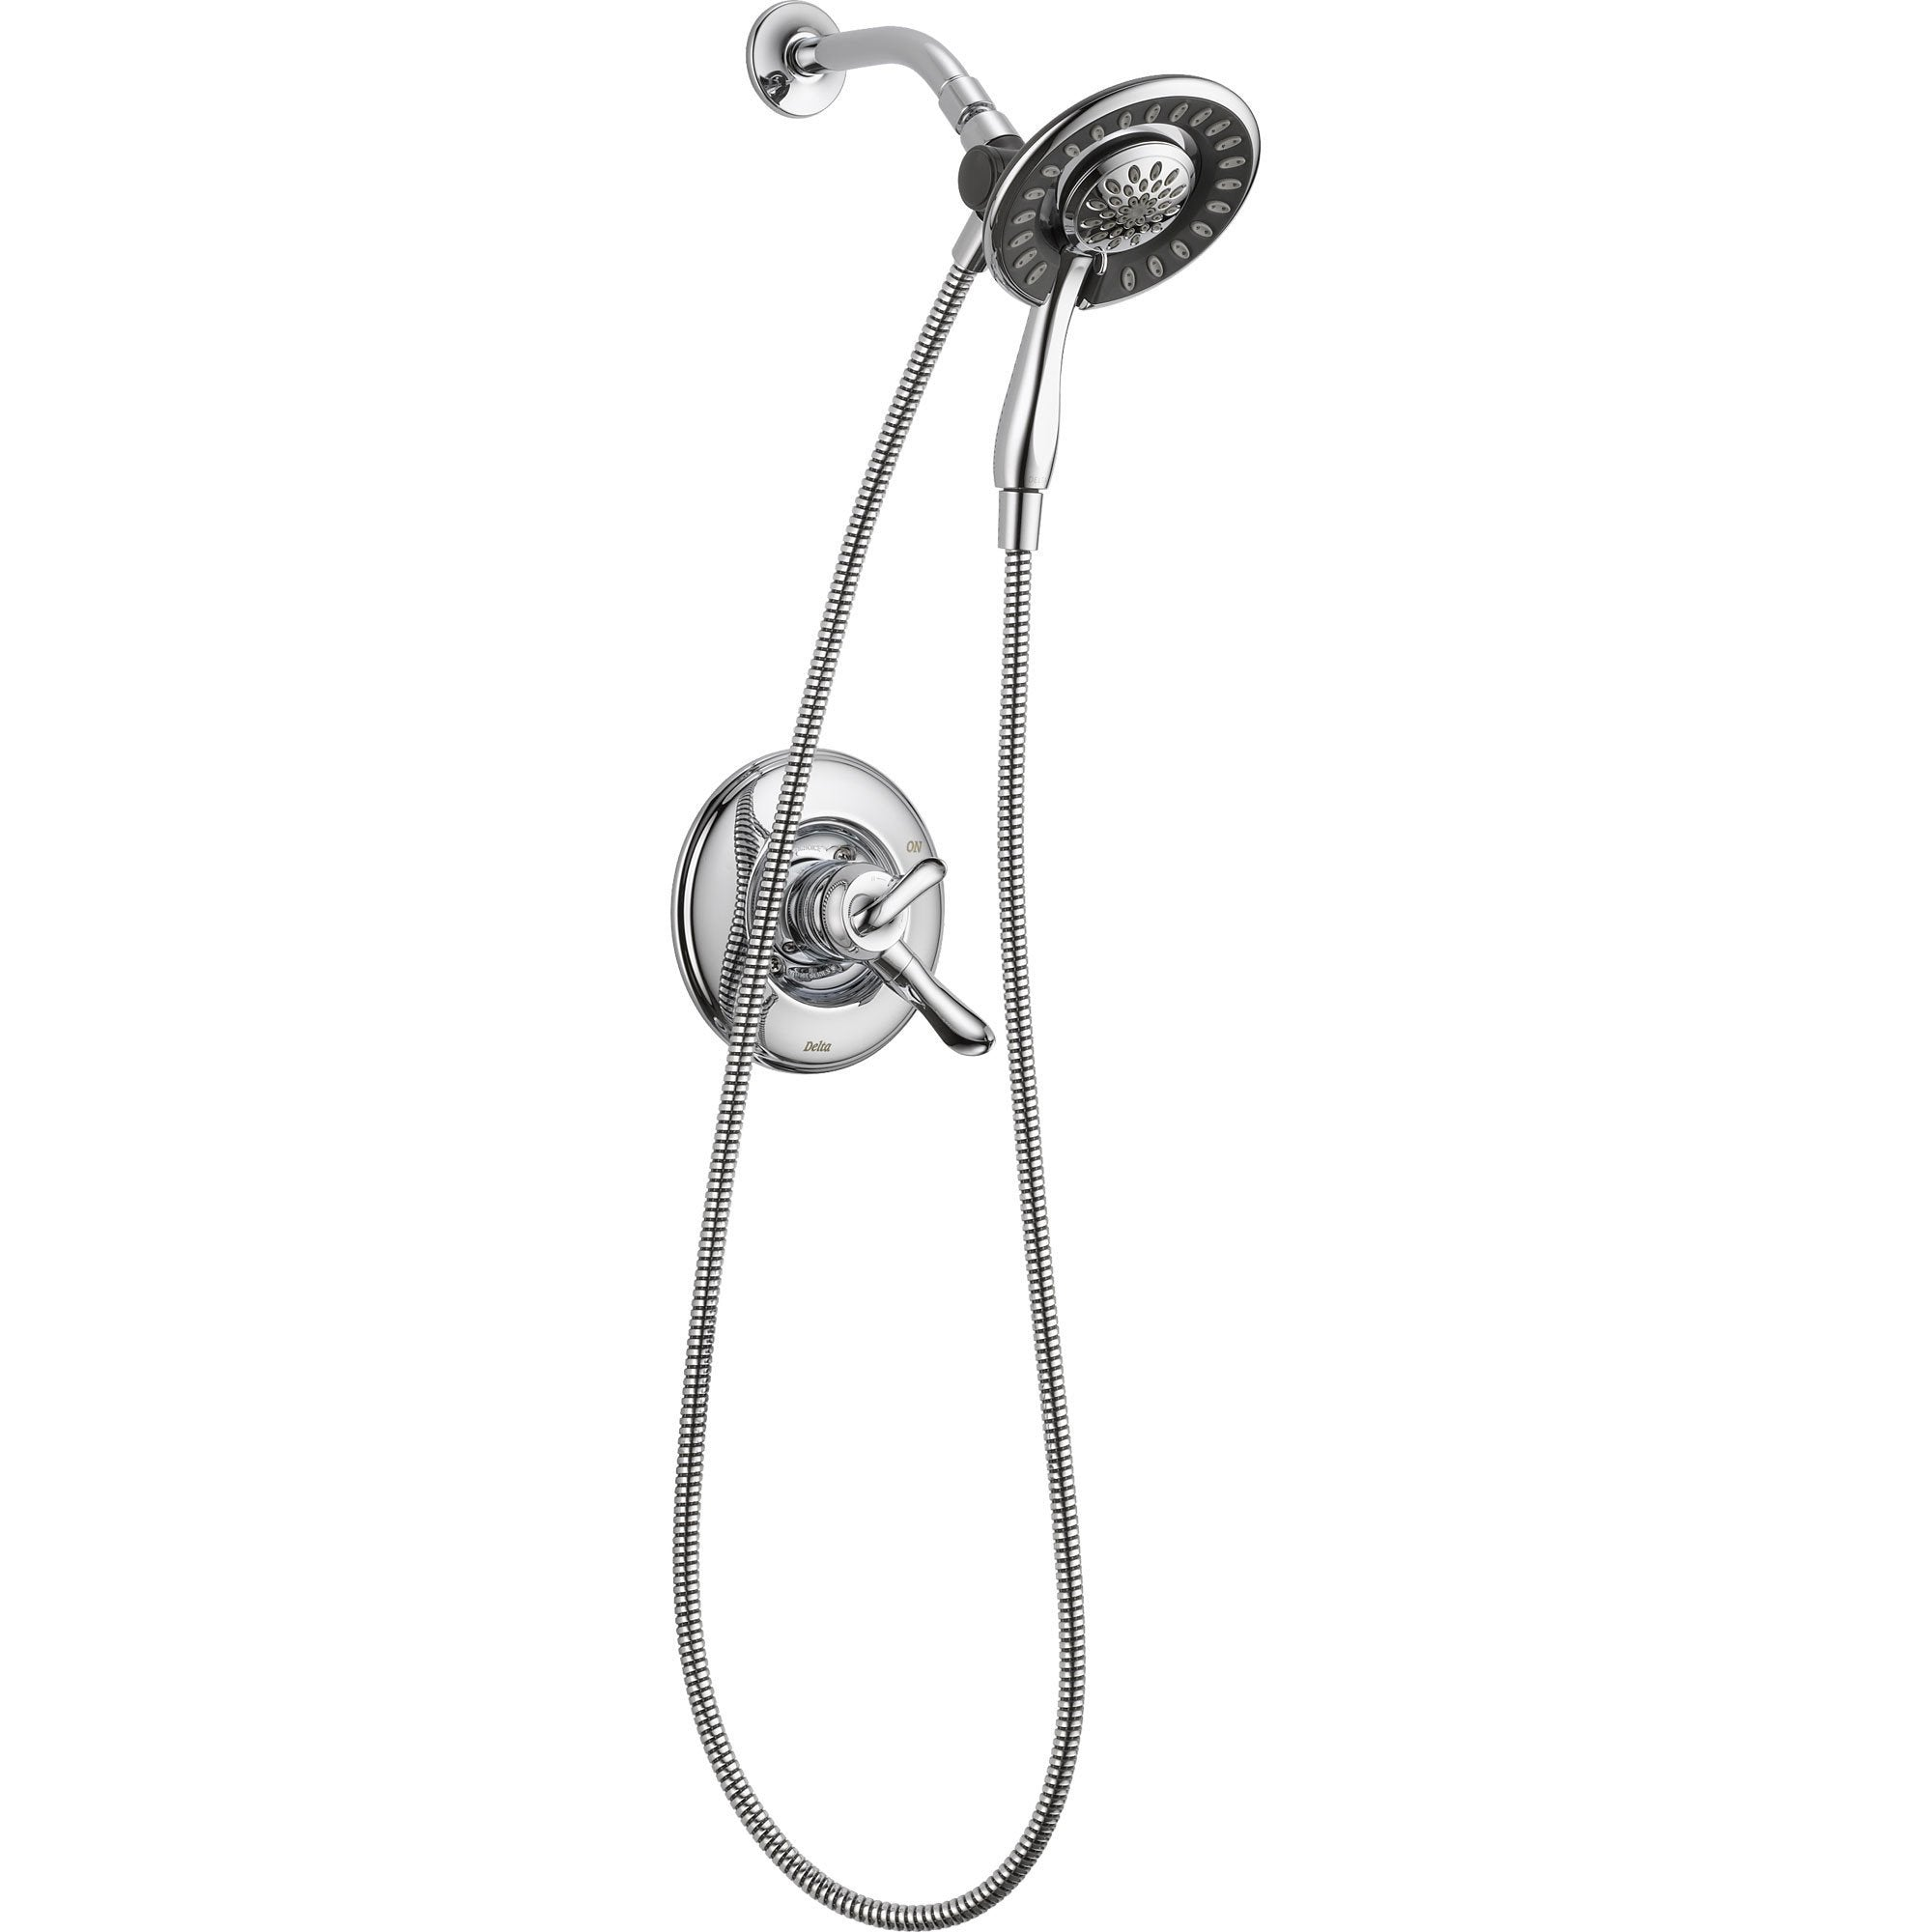 Delta Linden Dual Control Chrome Handheld & Shower Head, Includes Valve D964V